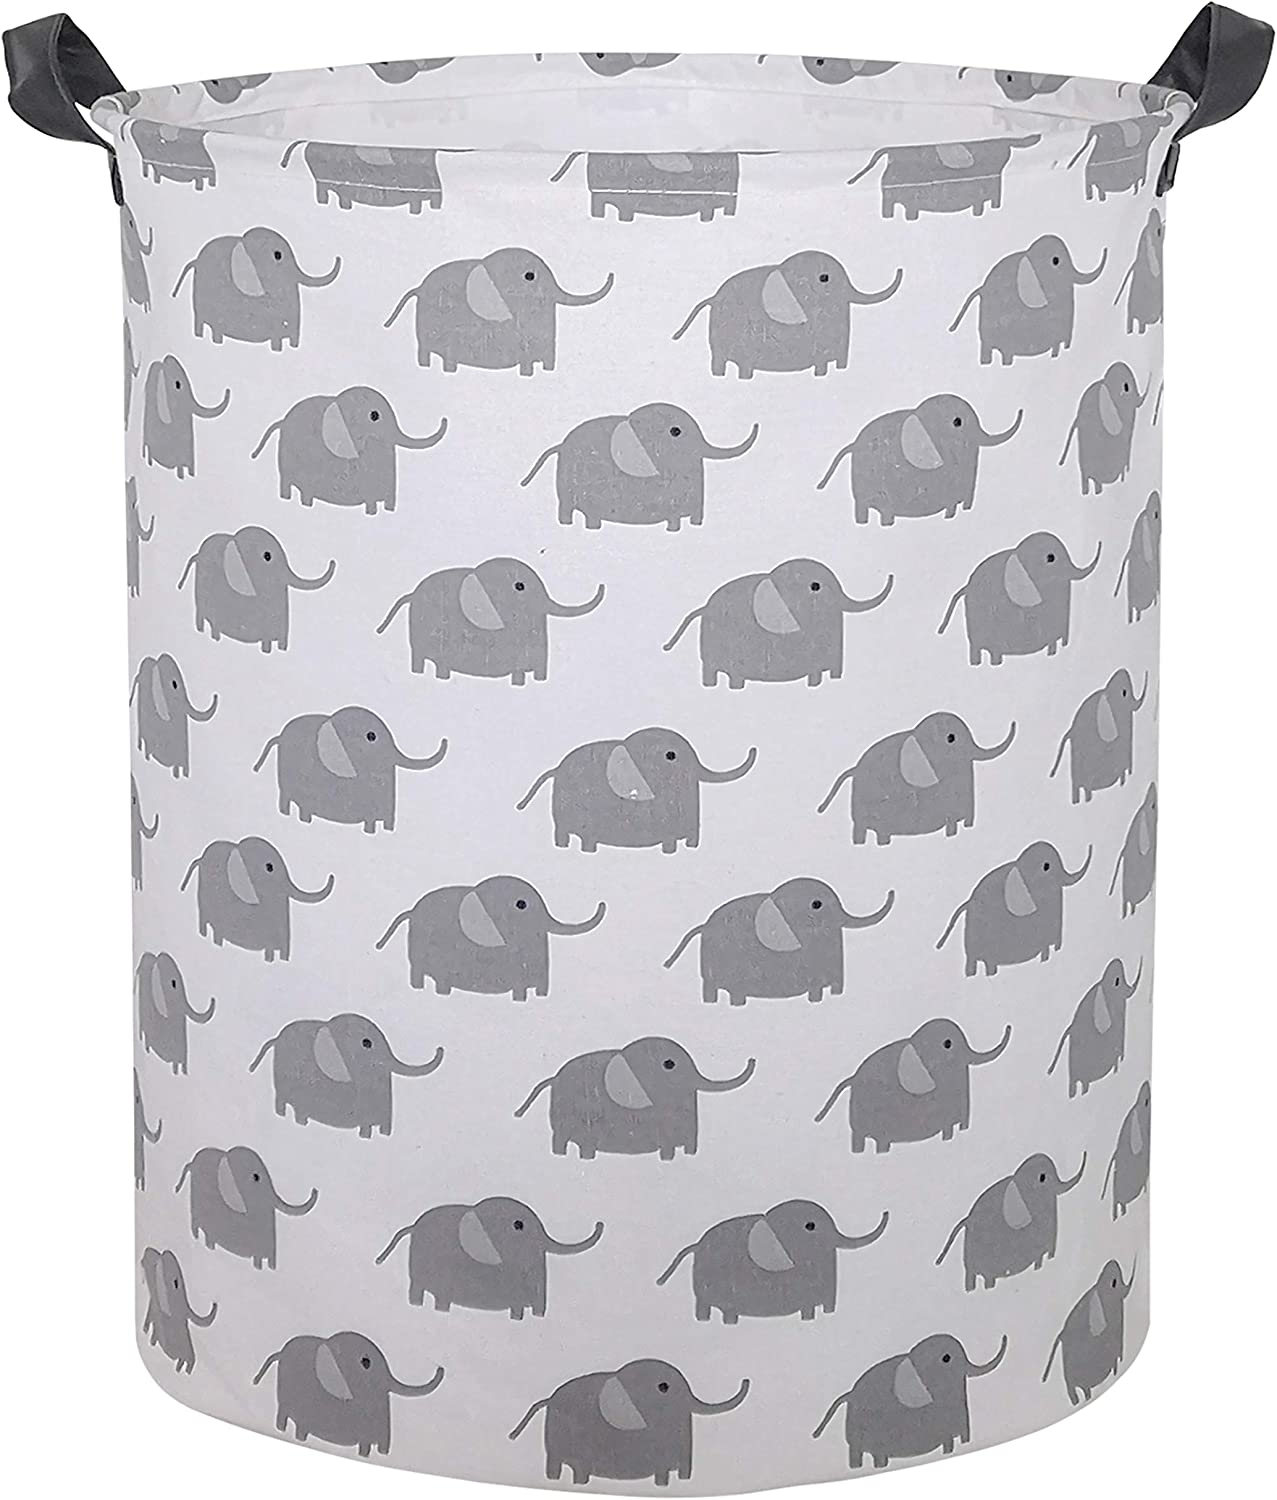 CLOCOR Large Storage Basket,Canvas Fabric Waterproof Storage Bin Collapsible Laundry Hamper for Home,Kids,Toy Organizer (Cute Elephant)